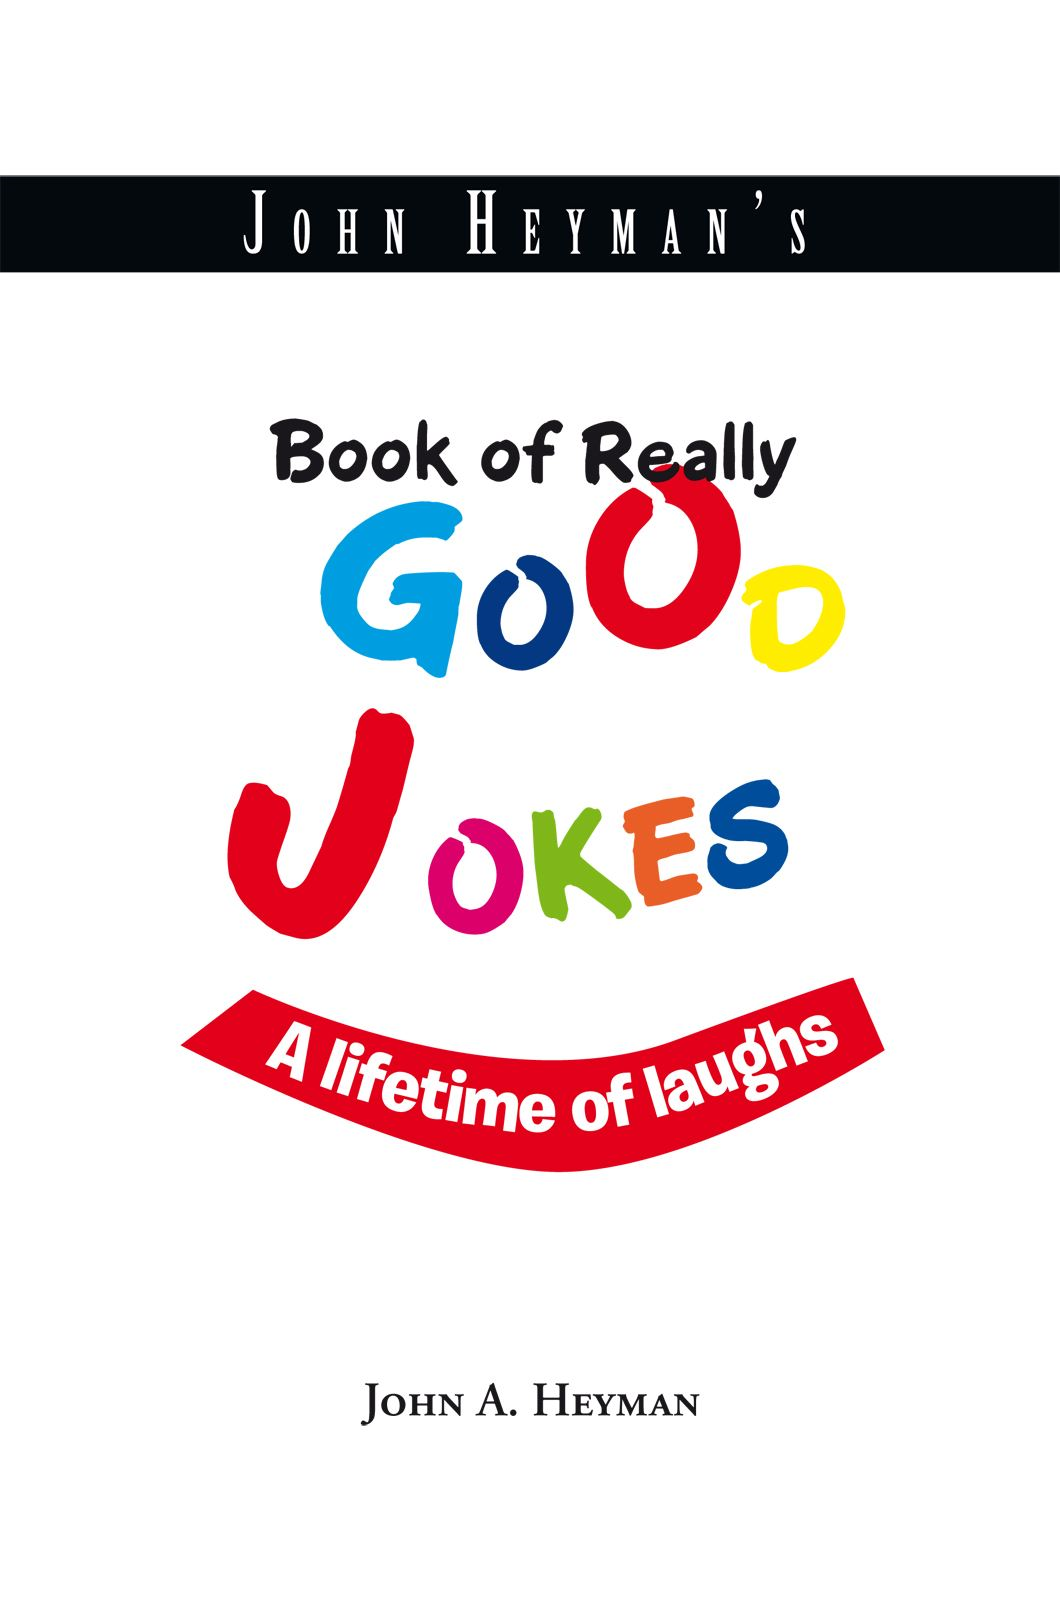 John Heyman's Book of Really Good Jokes